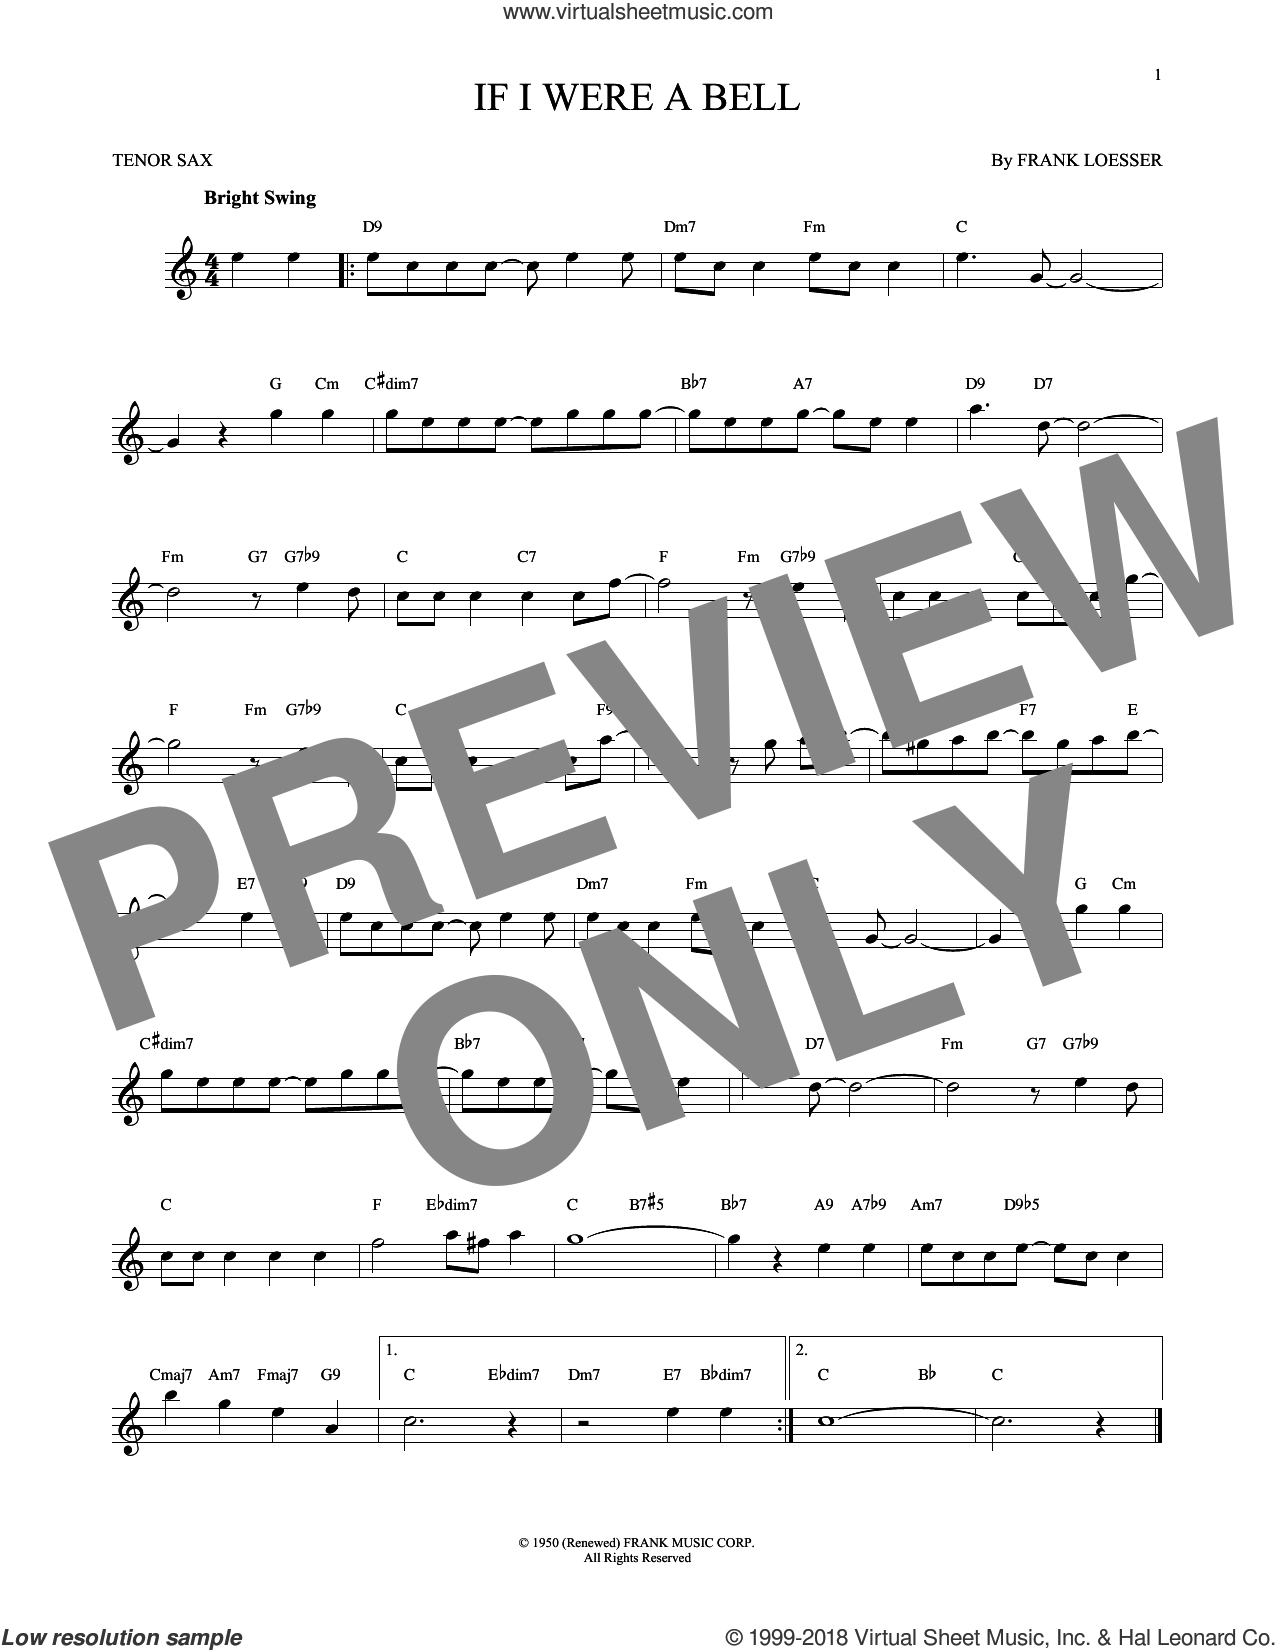 If I Were A Bell sheet music for tenor saxophone solo by Frank Loesser, intermediate skill level